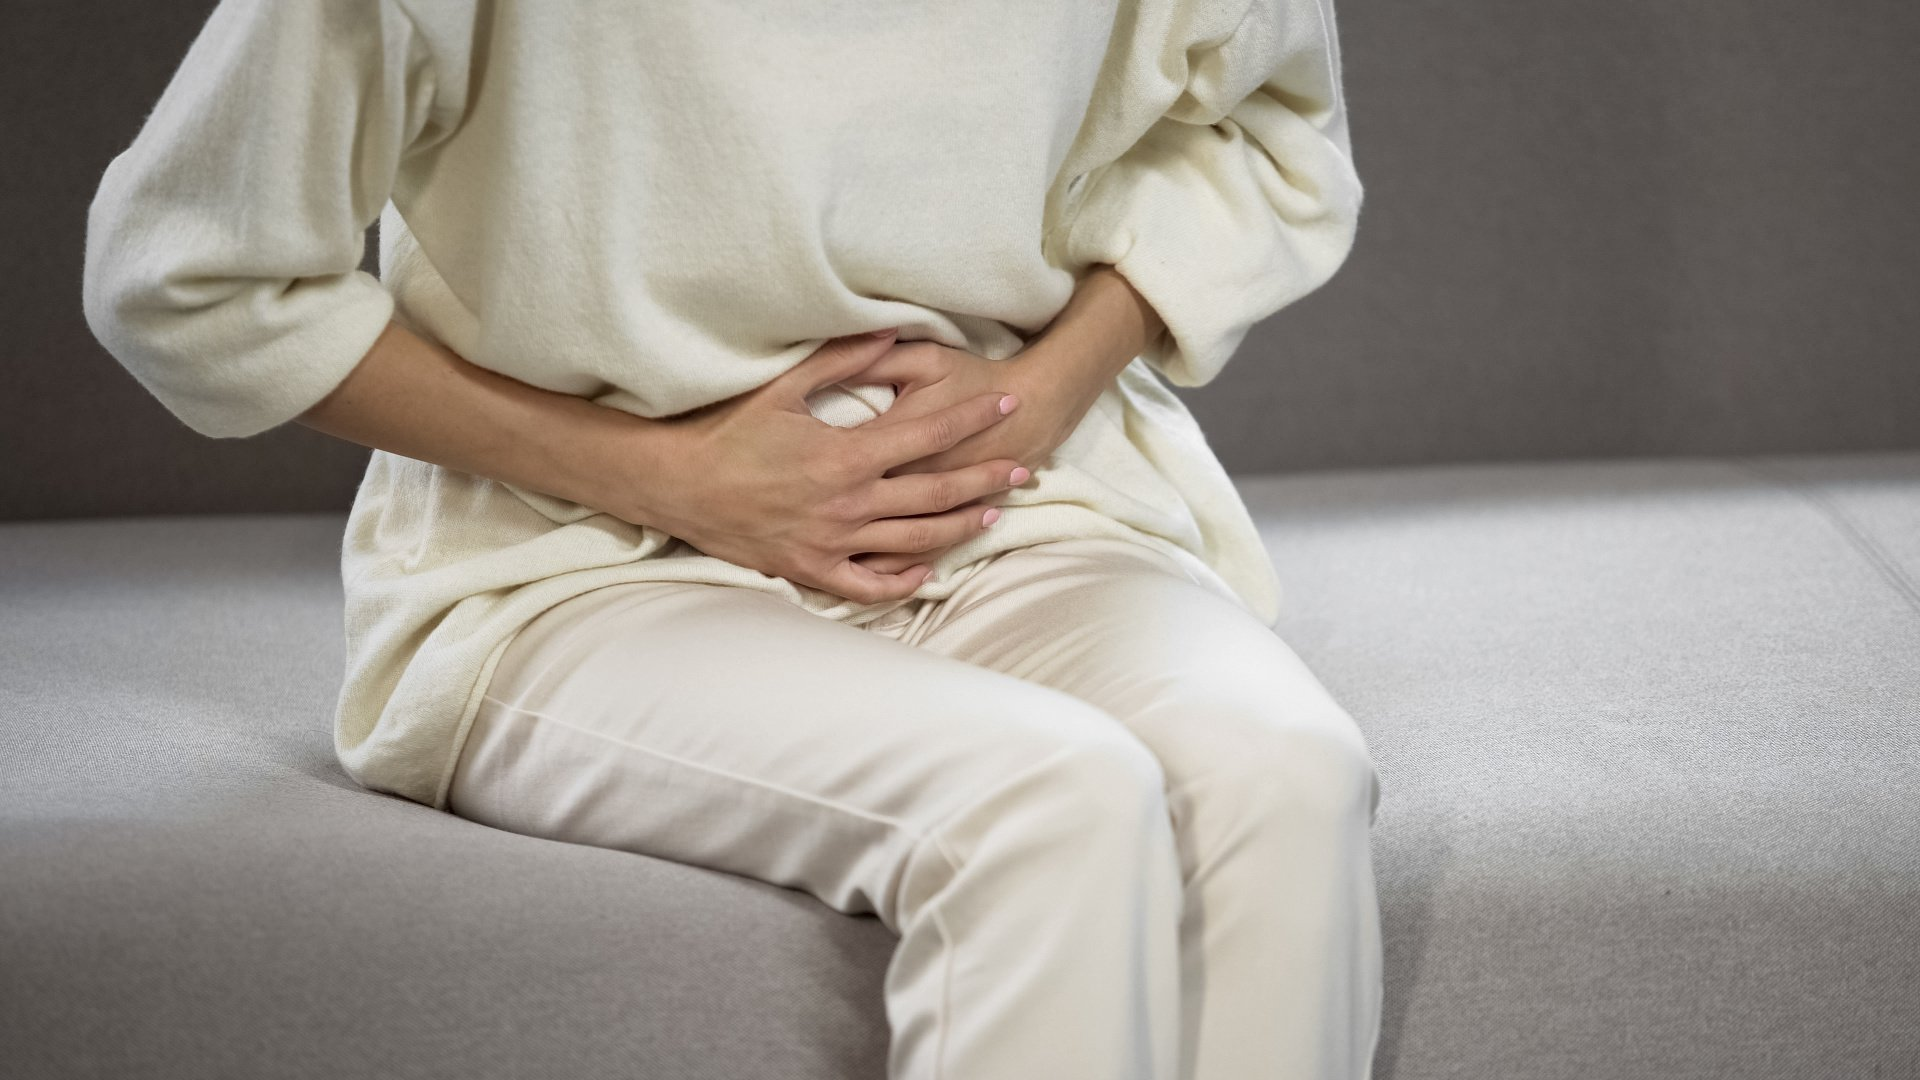 Cholecystitis: Causes and Treatment of Gall Bladder Inflammation